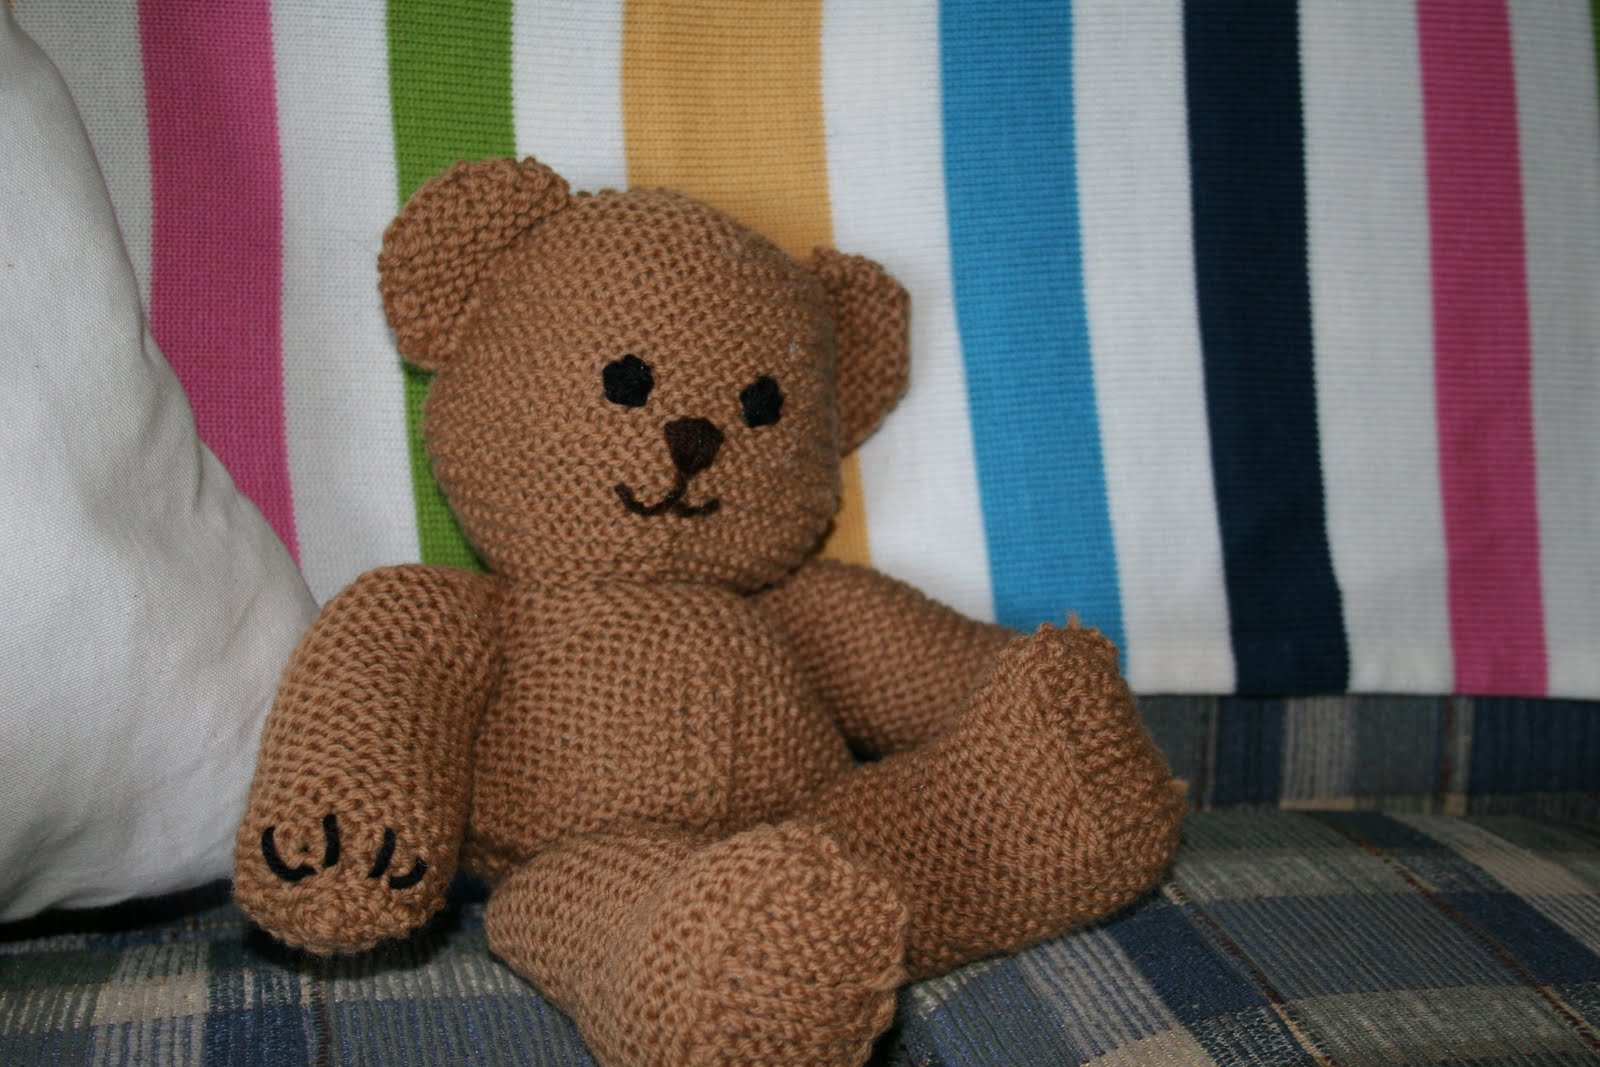 joyful strength: knit teddy bear